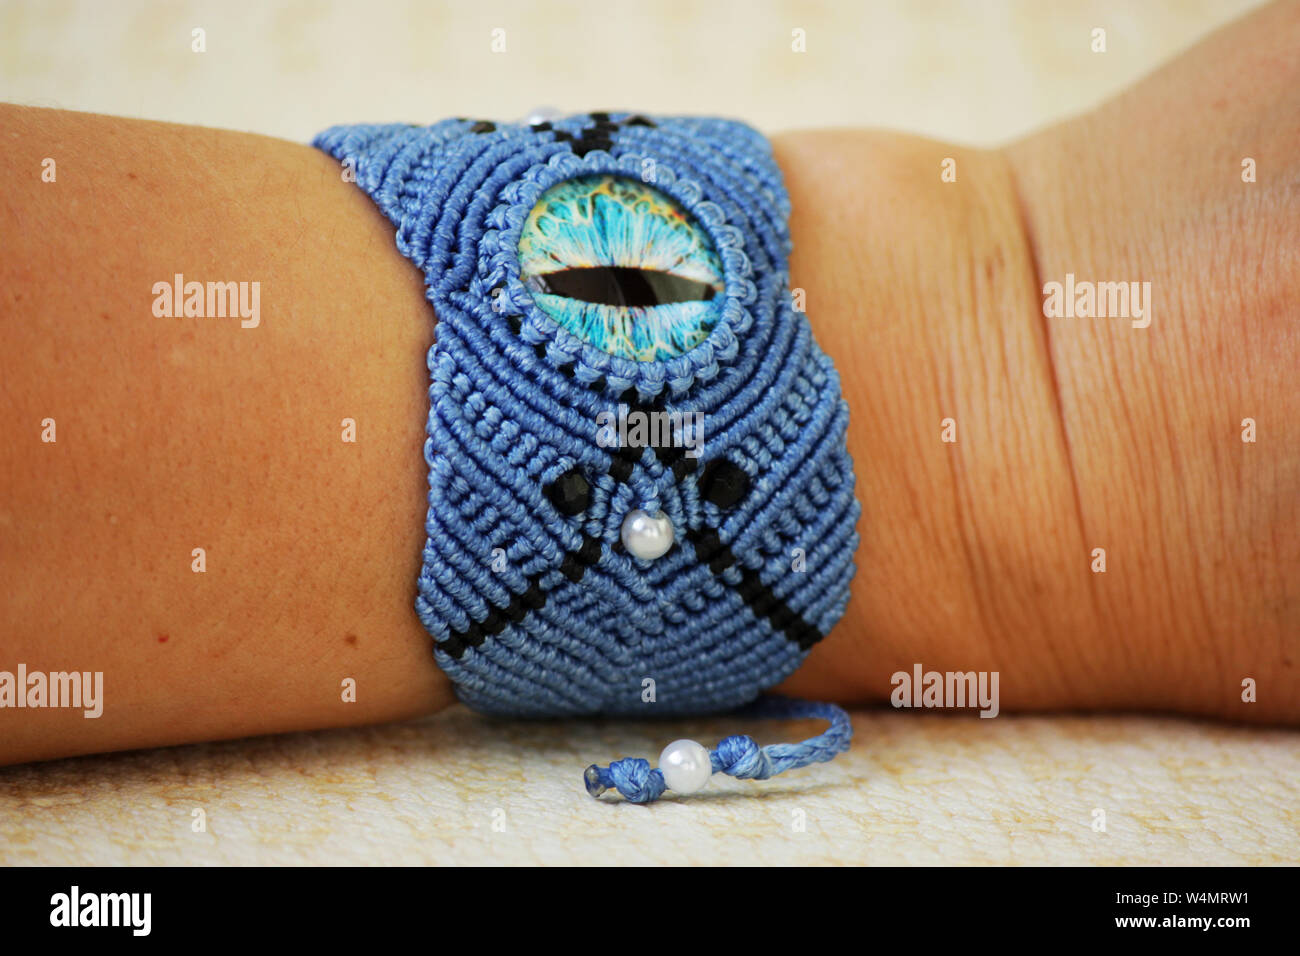 blue bracelete with white beads and the dragon's eye on the hand from waxed thread in the technique of macrame. Handmade. put on hand. Stock Photo